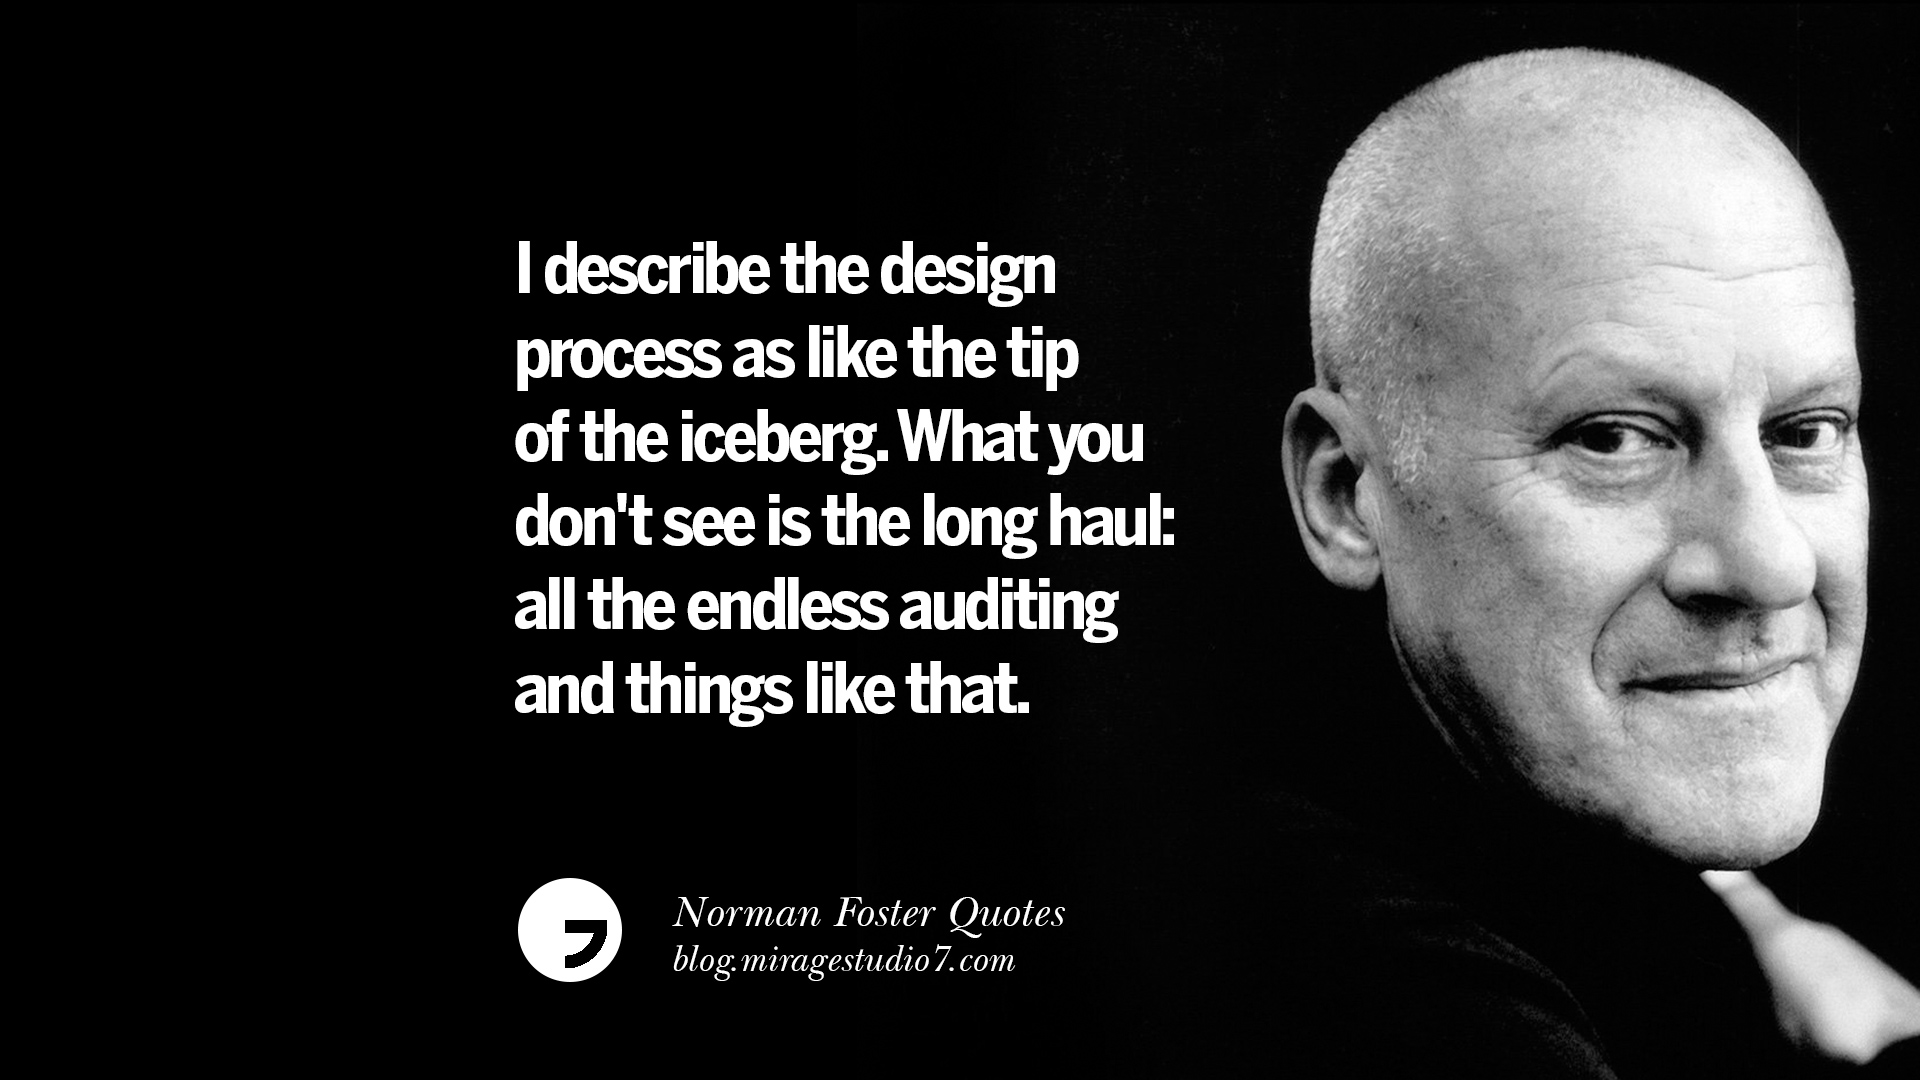 norman foster quotes on technology simplicity materials and